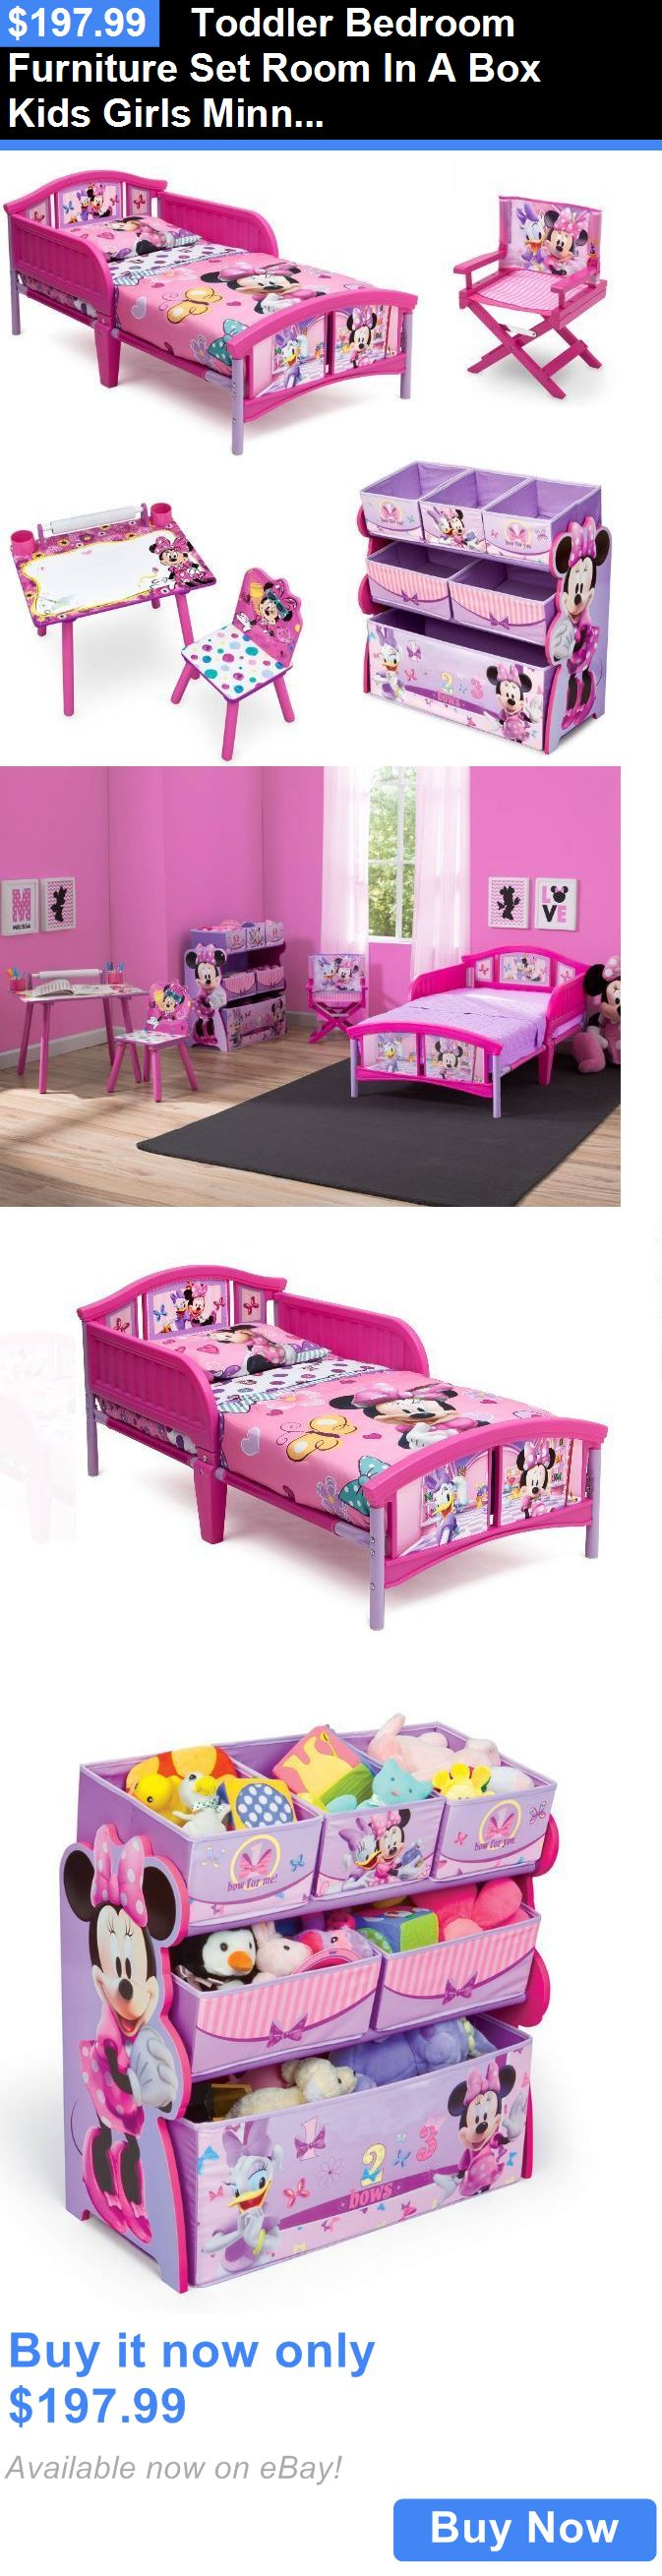 Kids at Home: Toddler Bedroom Furniture Set Room In A Box Kids Girls Minnie Mouse Pink Bed BUY IT NOW ONLY: $197.99